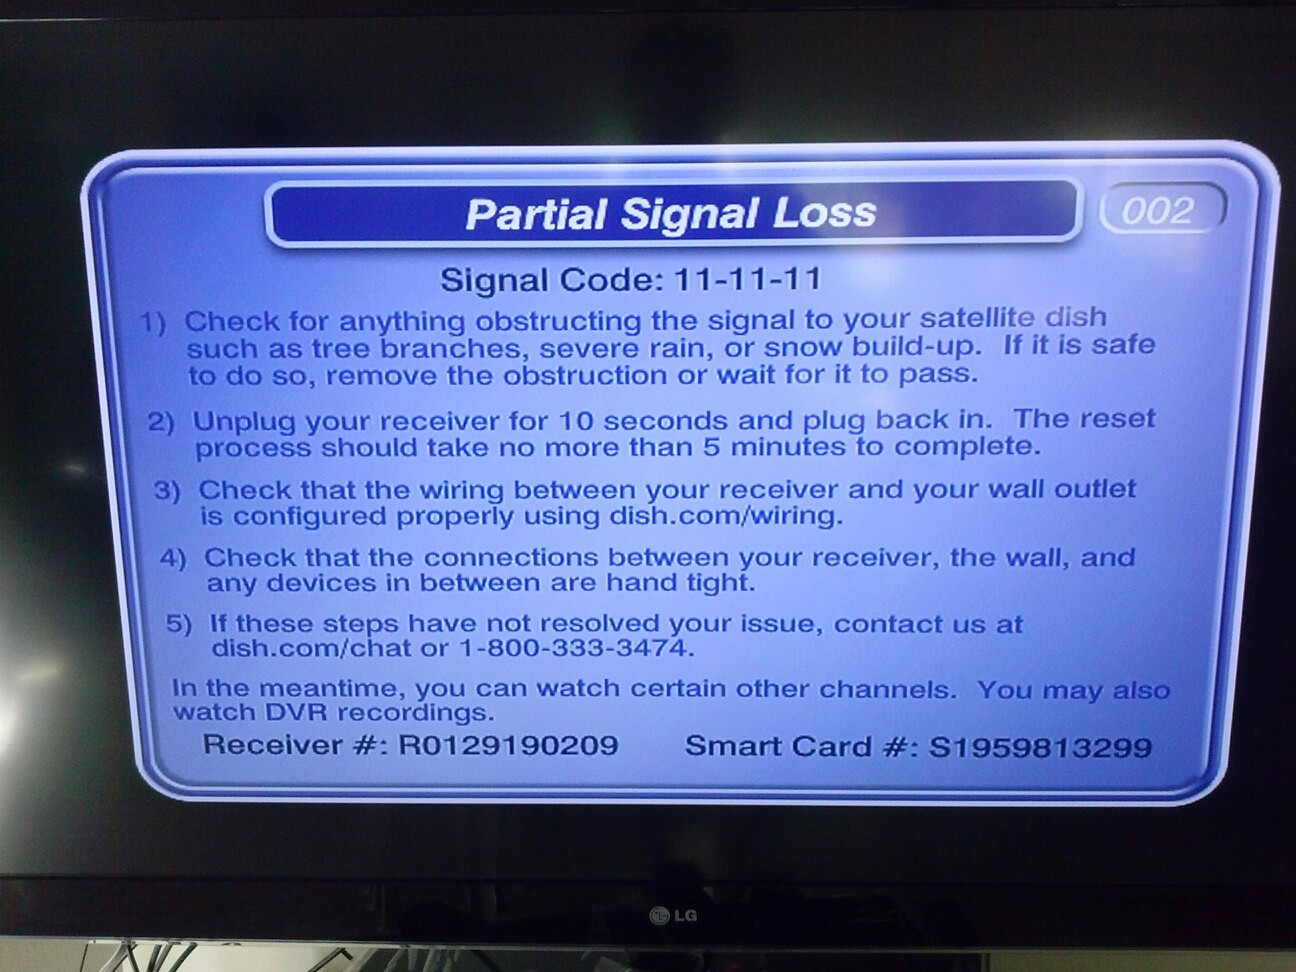 Partial signal loss on our dish signal code 11 11 11 ogoing